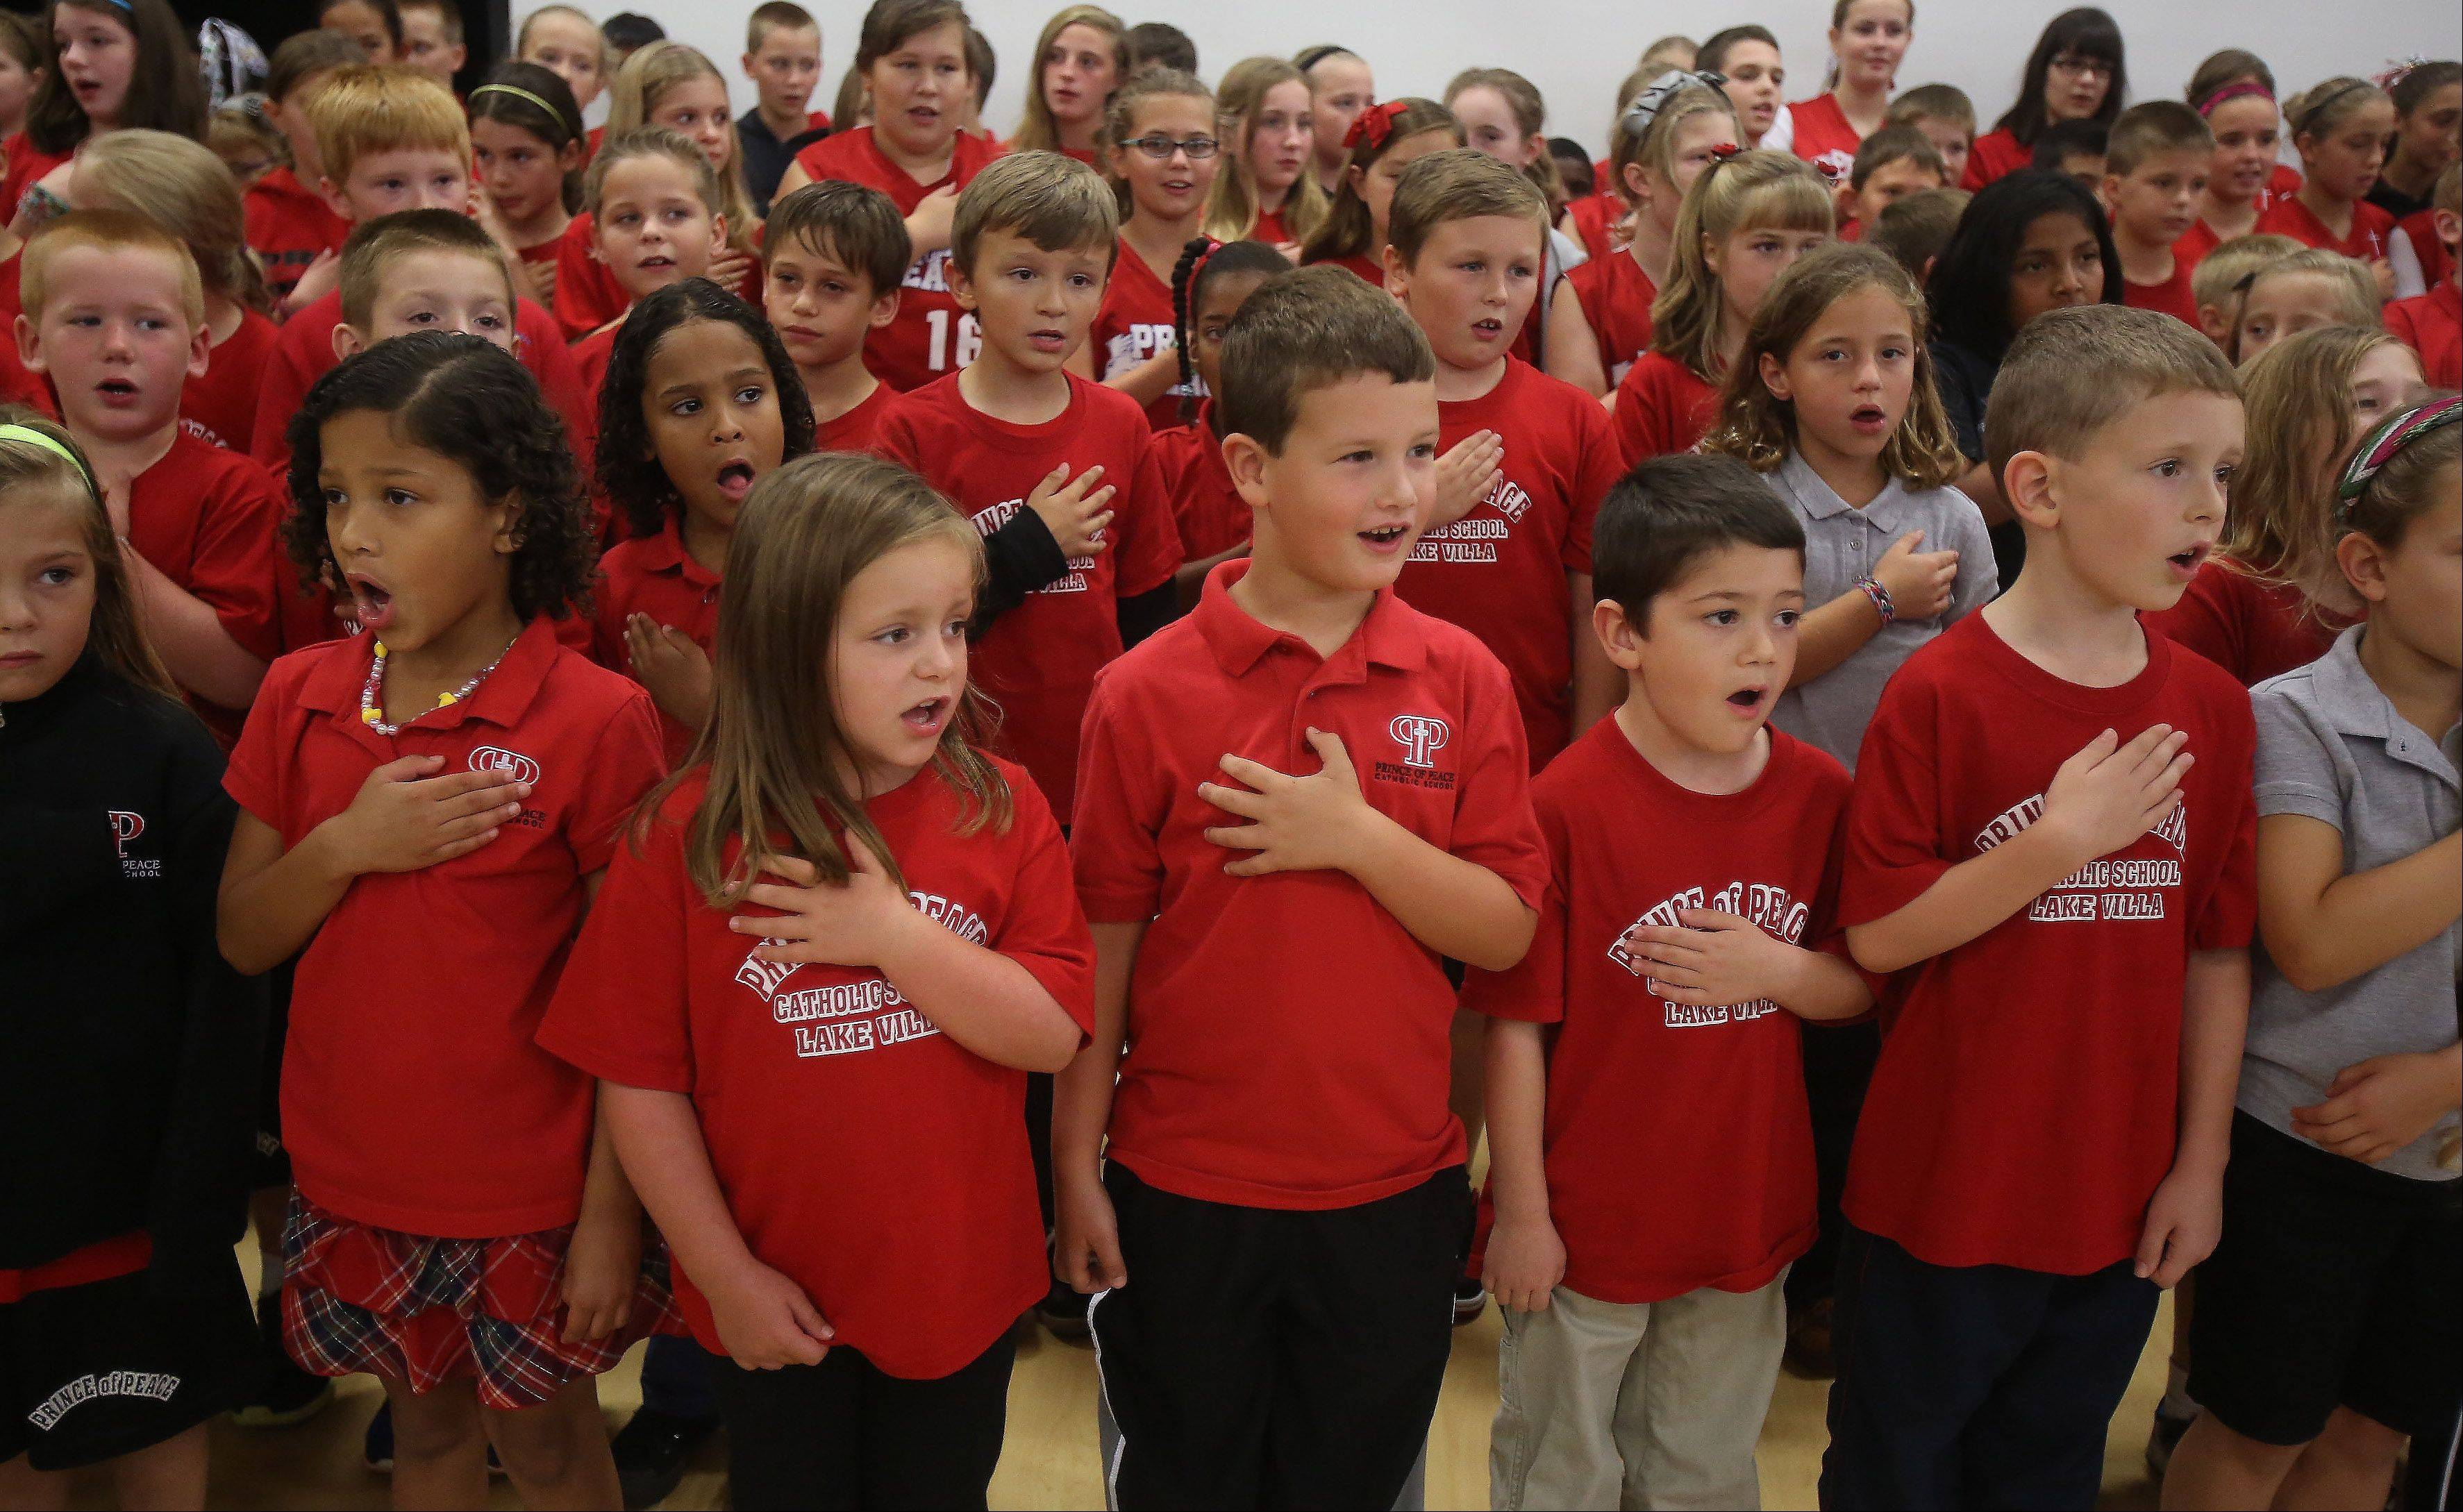 Young Redhawk students sing the national anthem during the dedication ceremony Sunday at Prince of Peace Catholic Church in Lake Villa. The church built a new 42,00-square-foot Parish Life Center, that included a new gym, preschool and kindergarten classes, a library, fine arts room, computer classrooms, and meeting rooms.